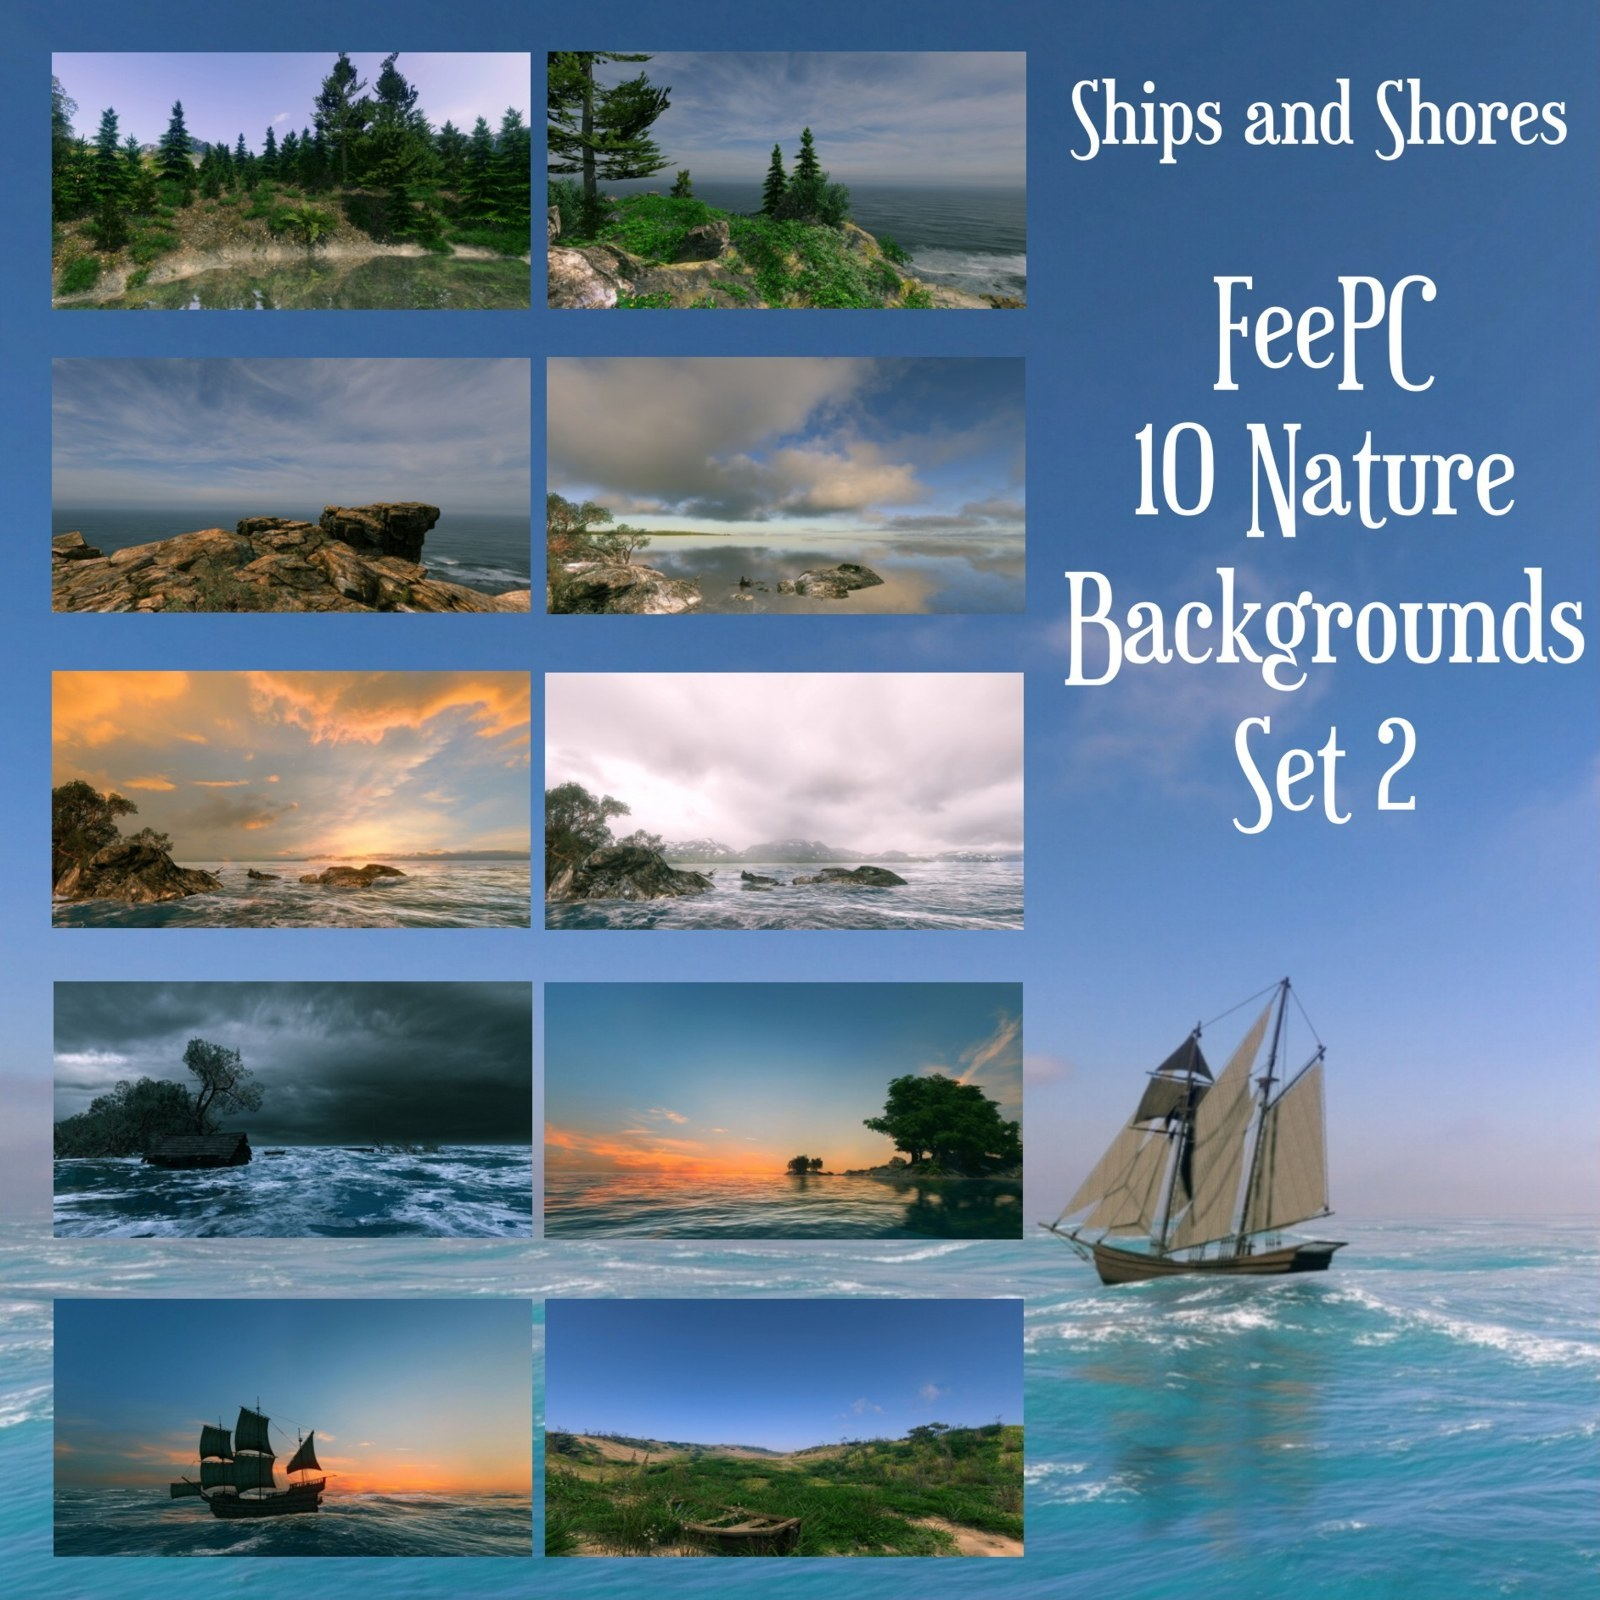 10 Ships and Shores Backgrounds by FeePC